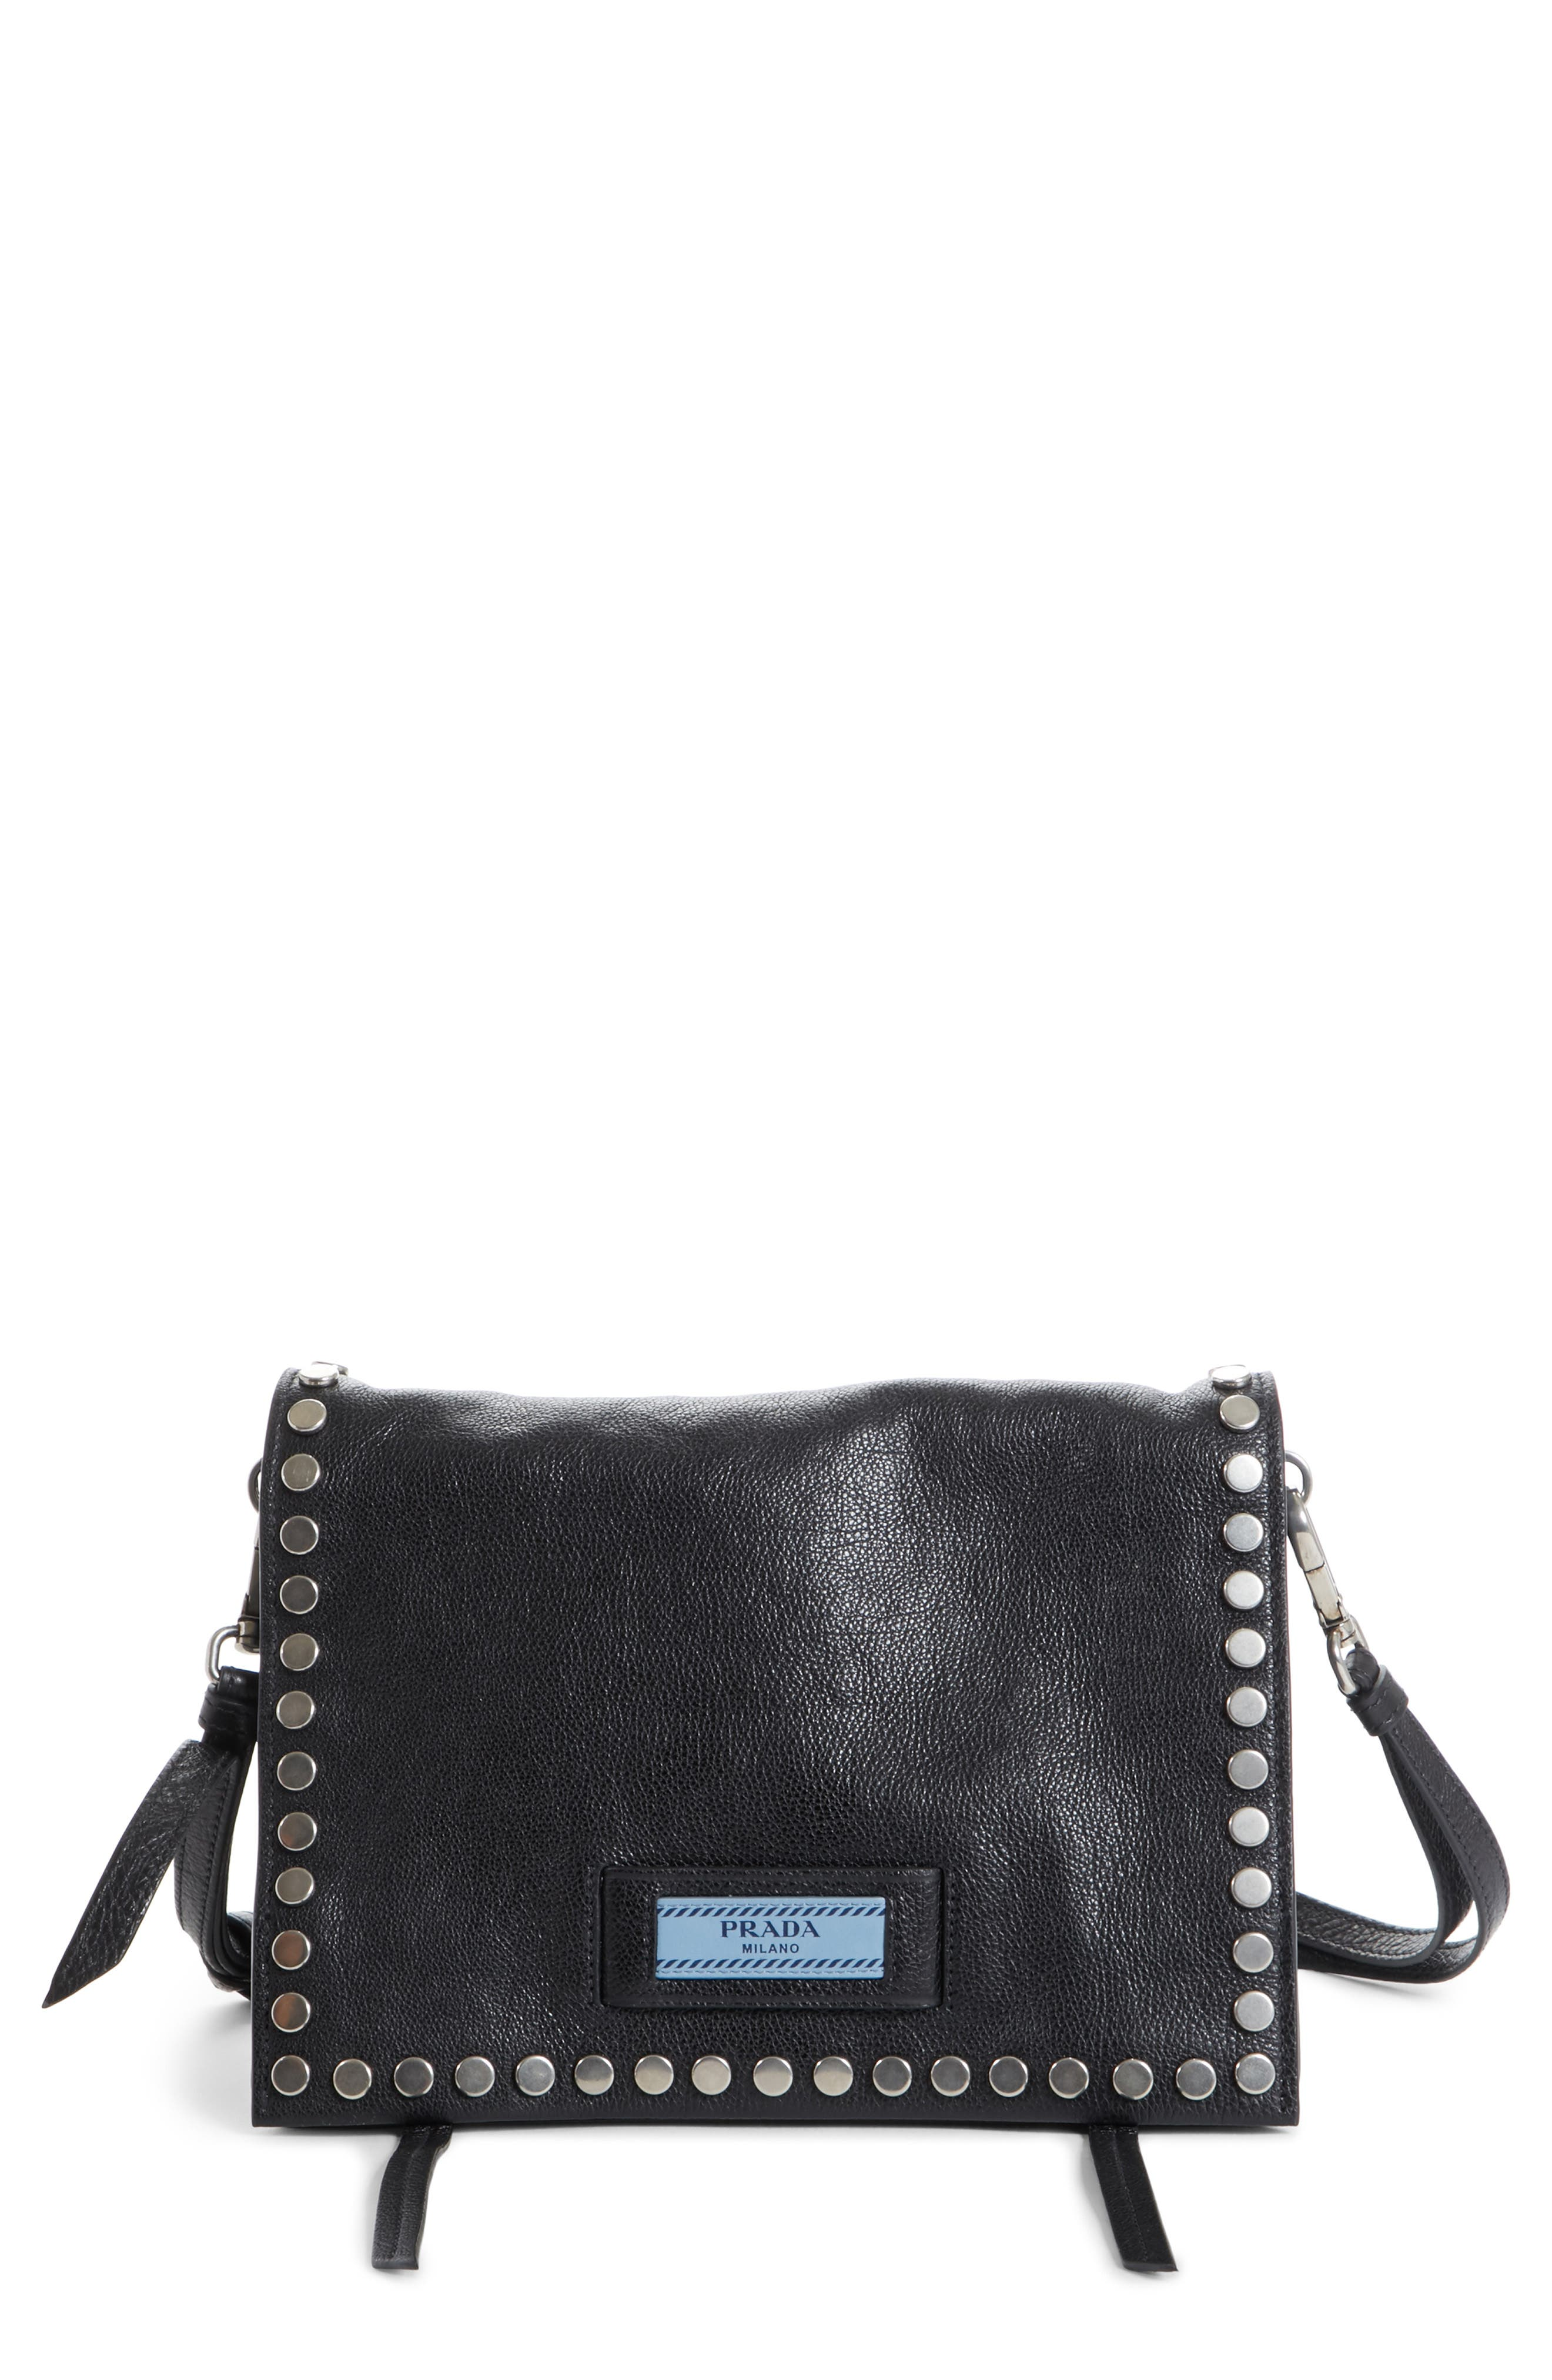 Prada Small Etiquette Studded Calfskin Leather Bag